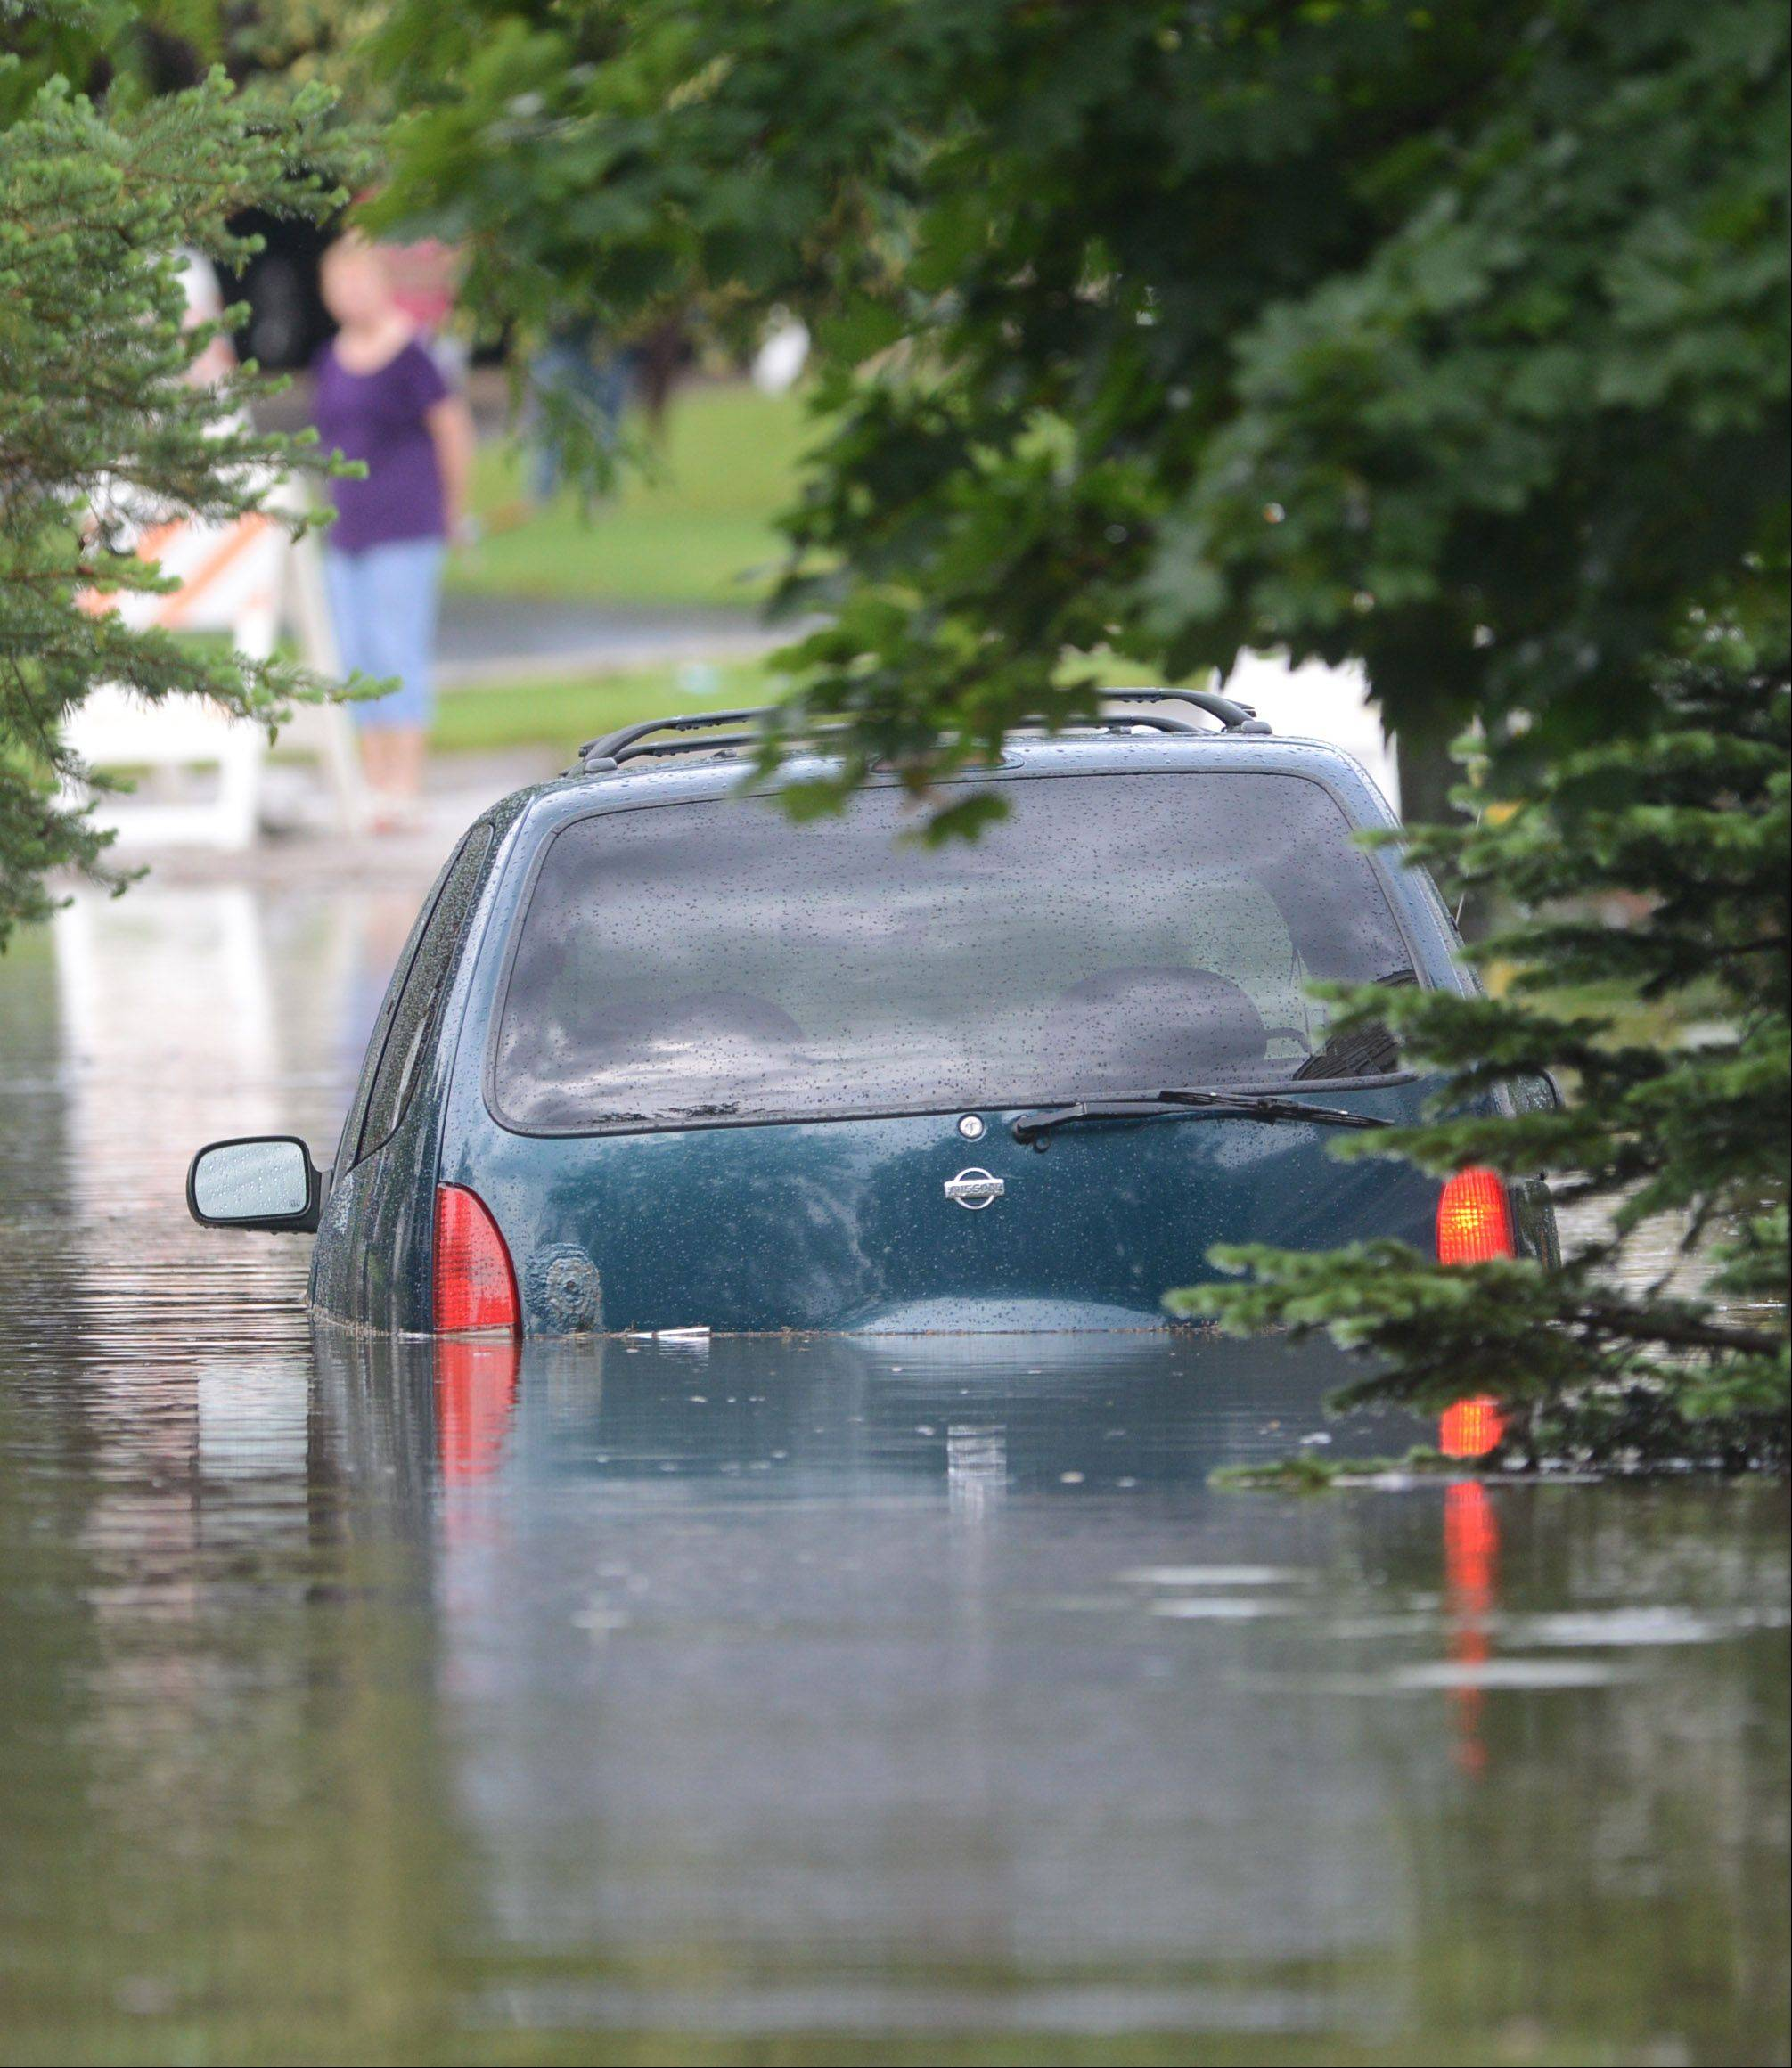 Paul Valade/pvalade@dailyherald.com A vehicle is half under water along Bristol Trail Drive in Lake Zurich Wednesday following heavy rains.